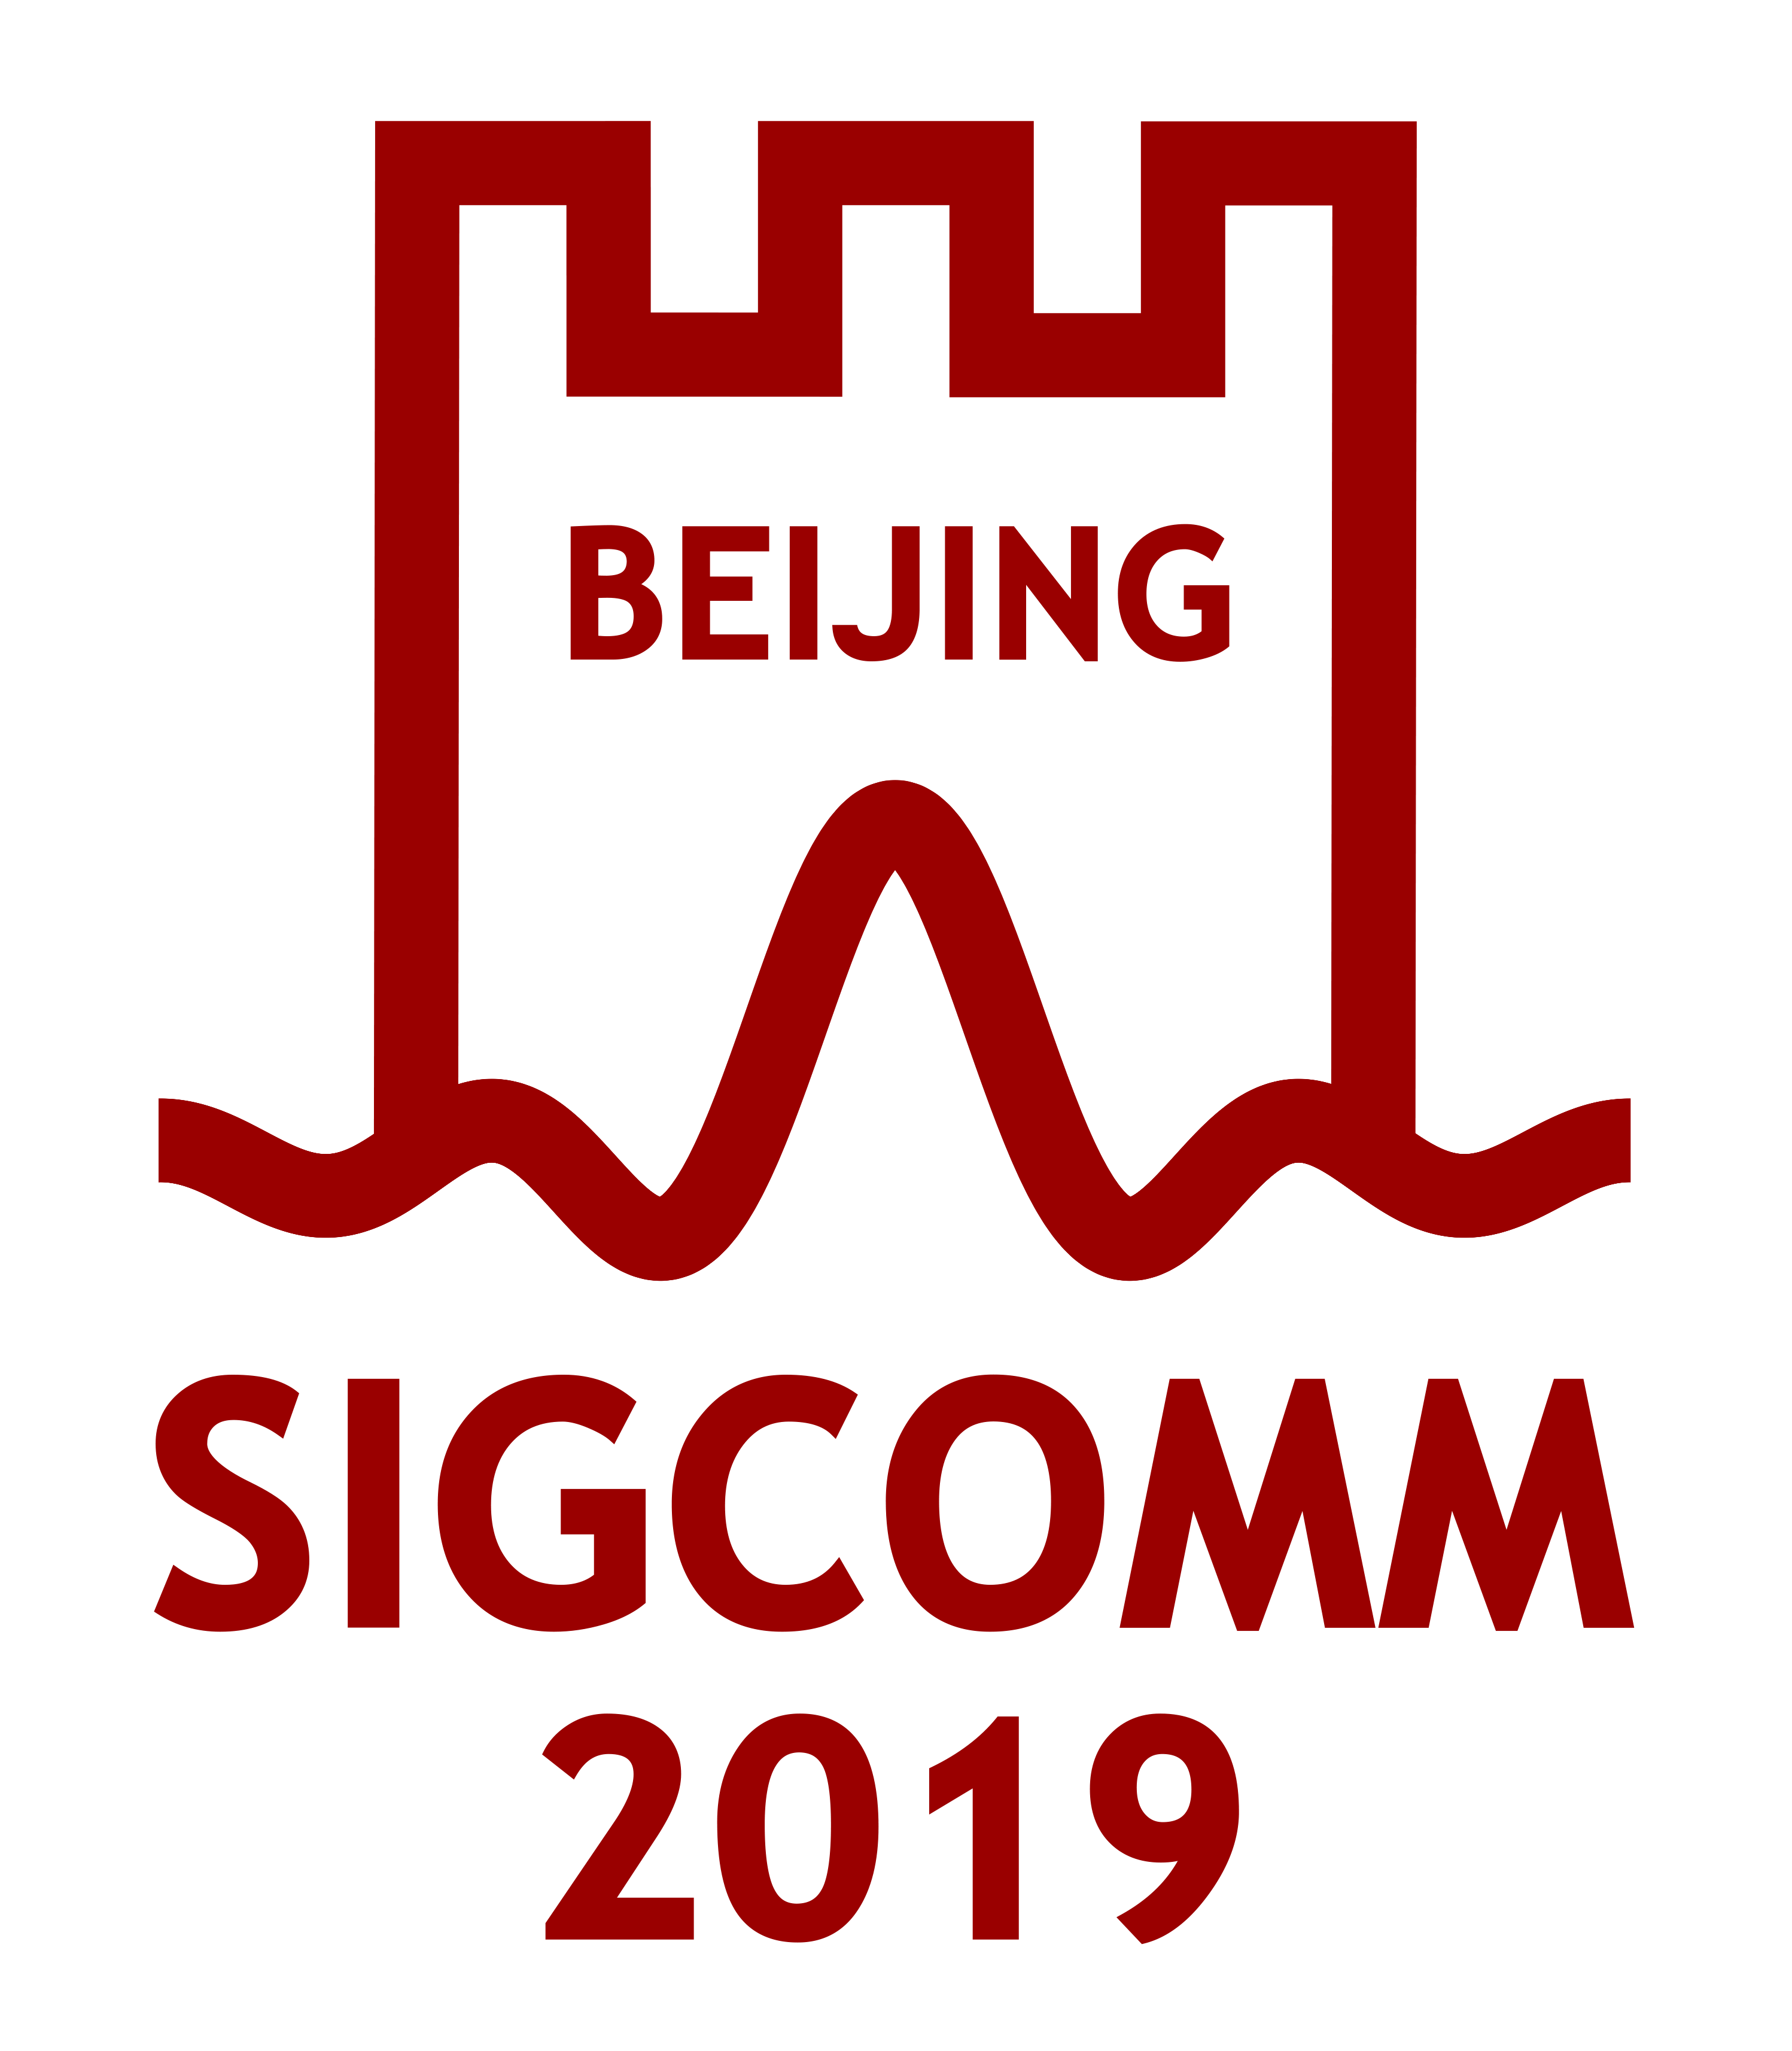 ACM SIGCOMM 2019, Beijing, China